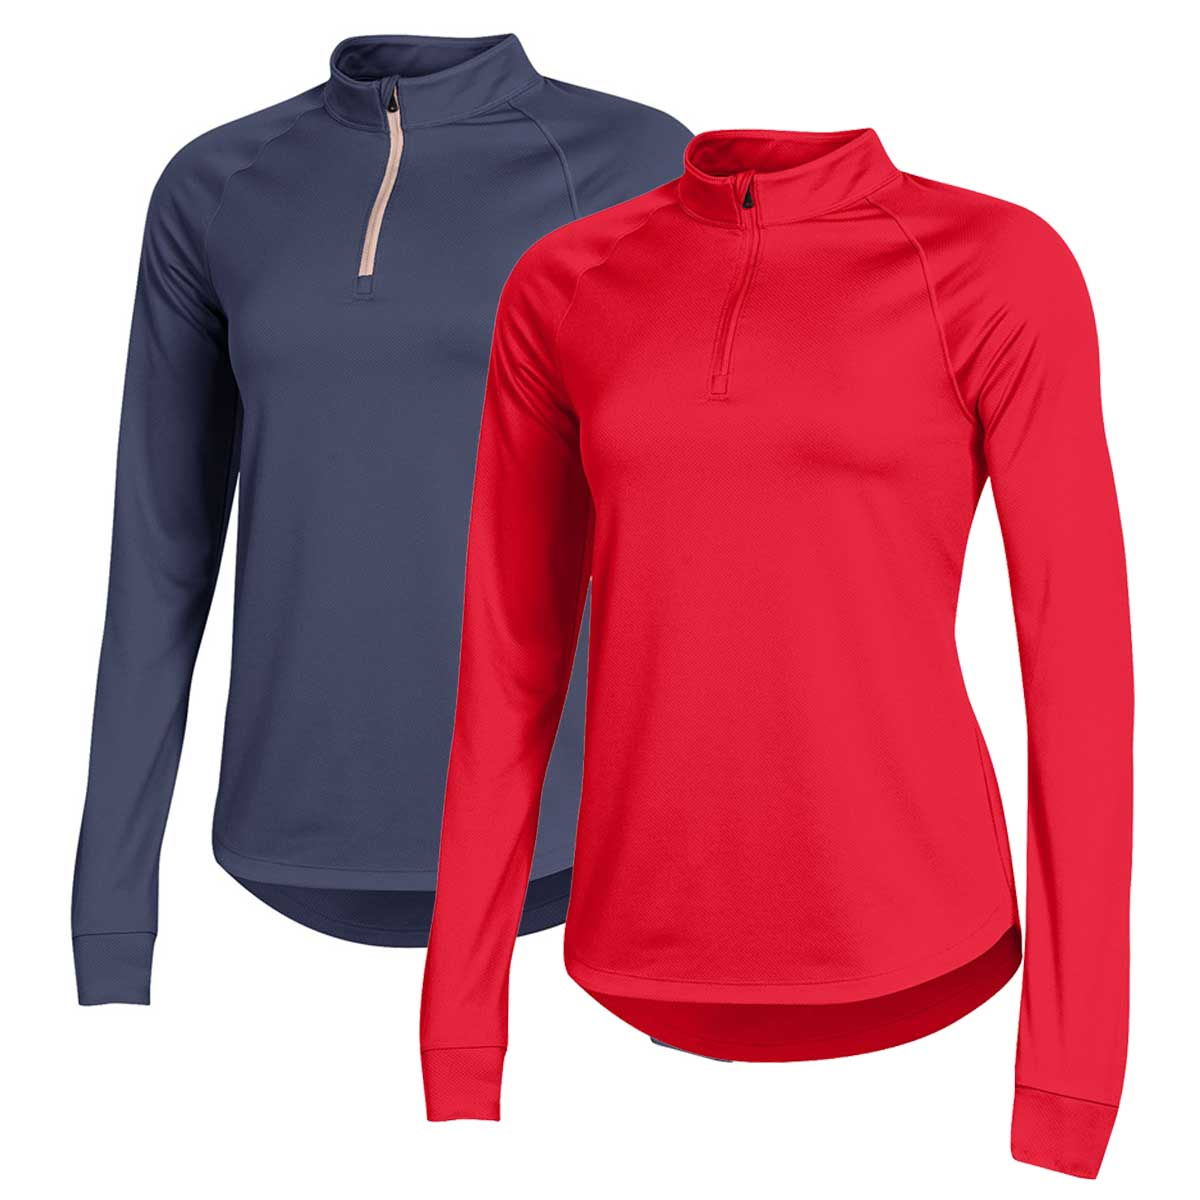 Under Armour Women's Rally 1/4 Zip Pullover